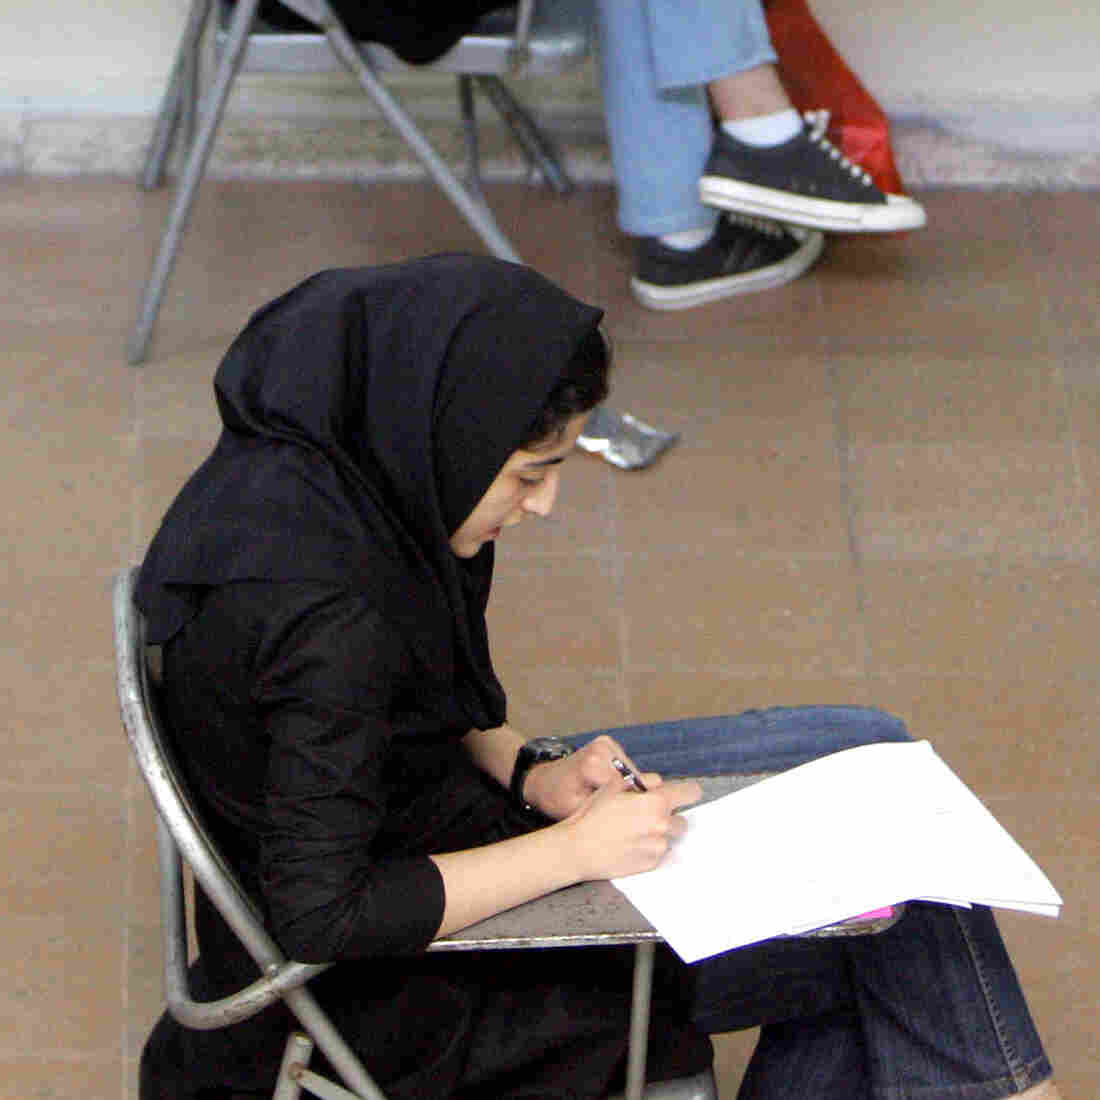 At Iranian Colleges, Some See Brighter Future In Another Country